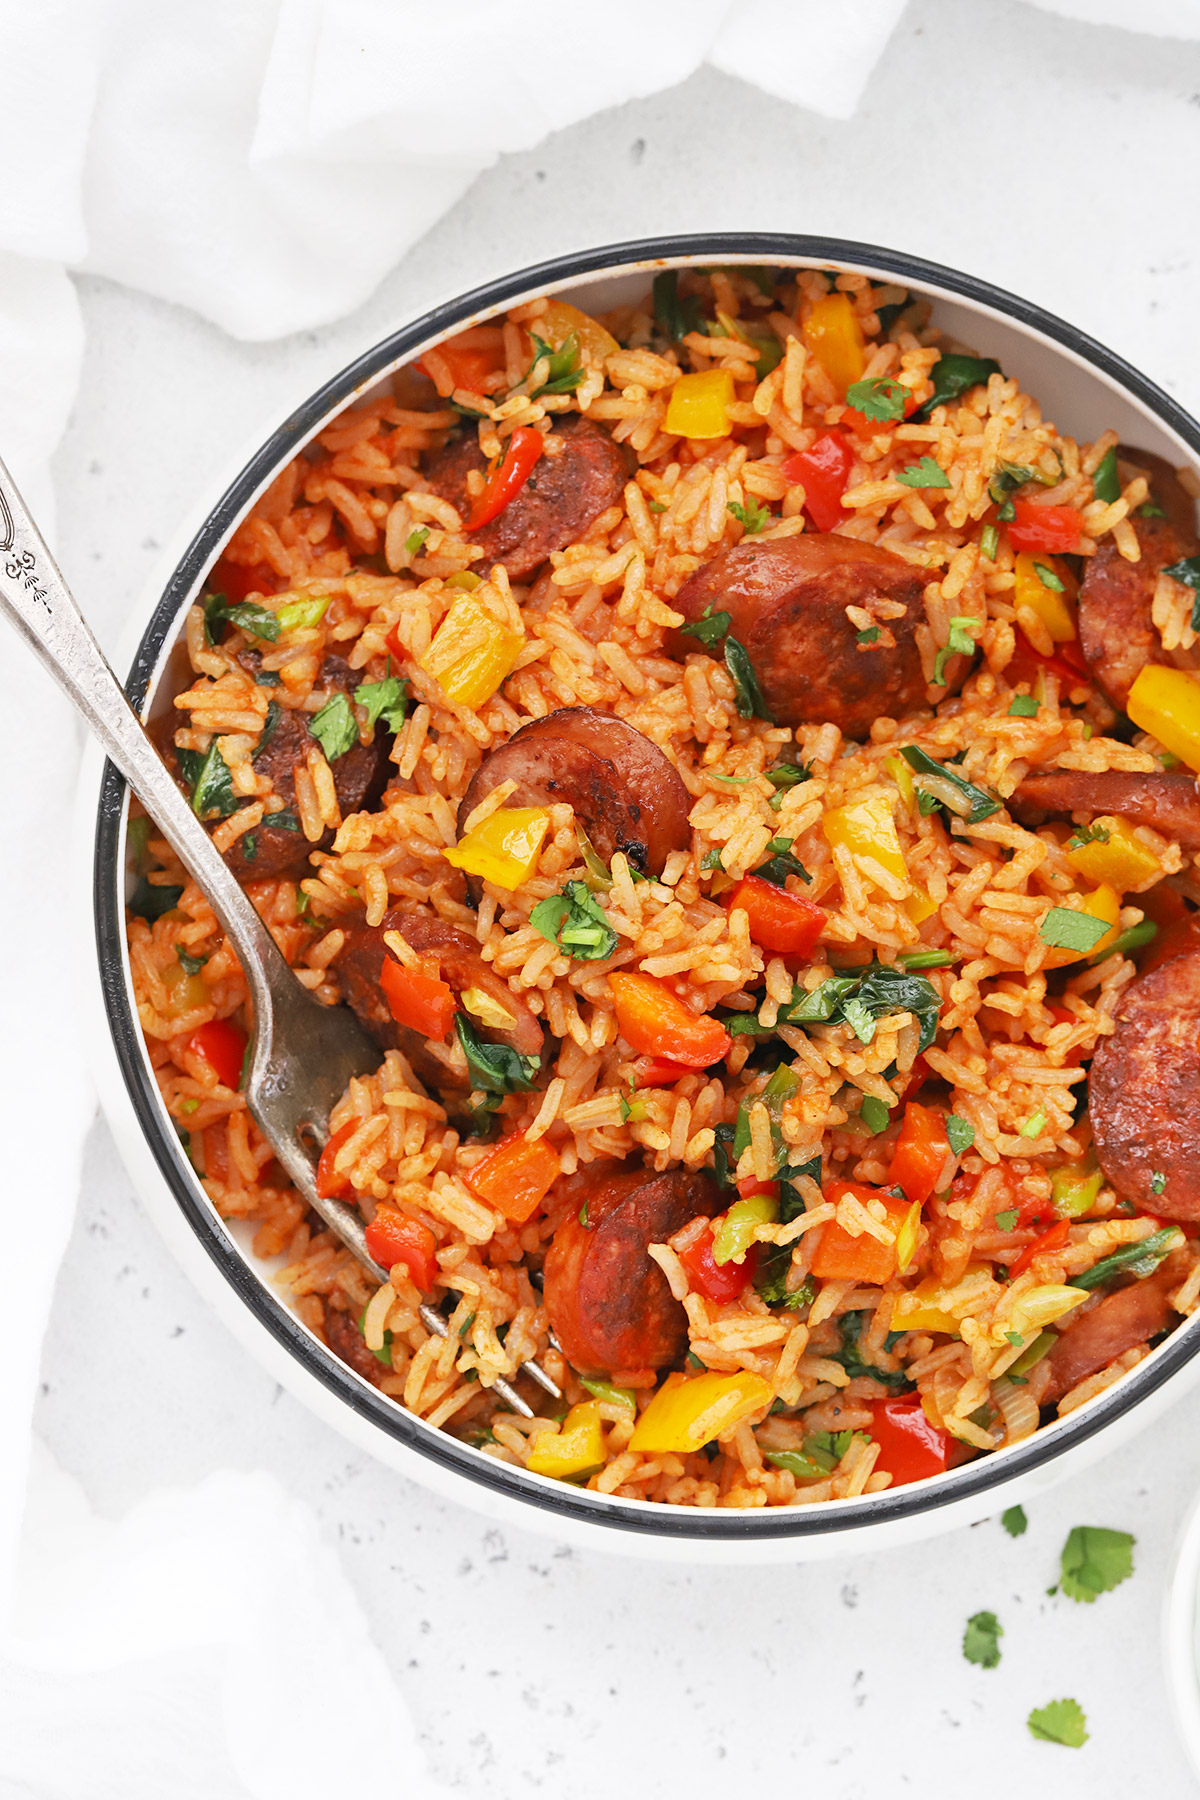 Close-up overhead view of a bowl of Cajun Sausage and Rice Skillet on a white background